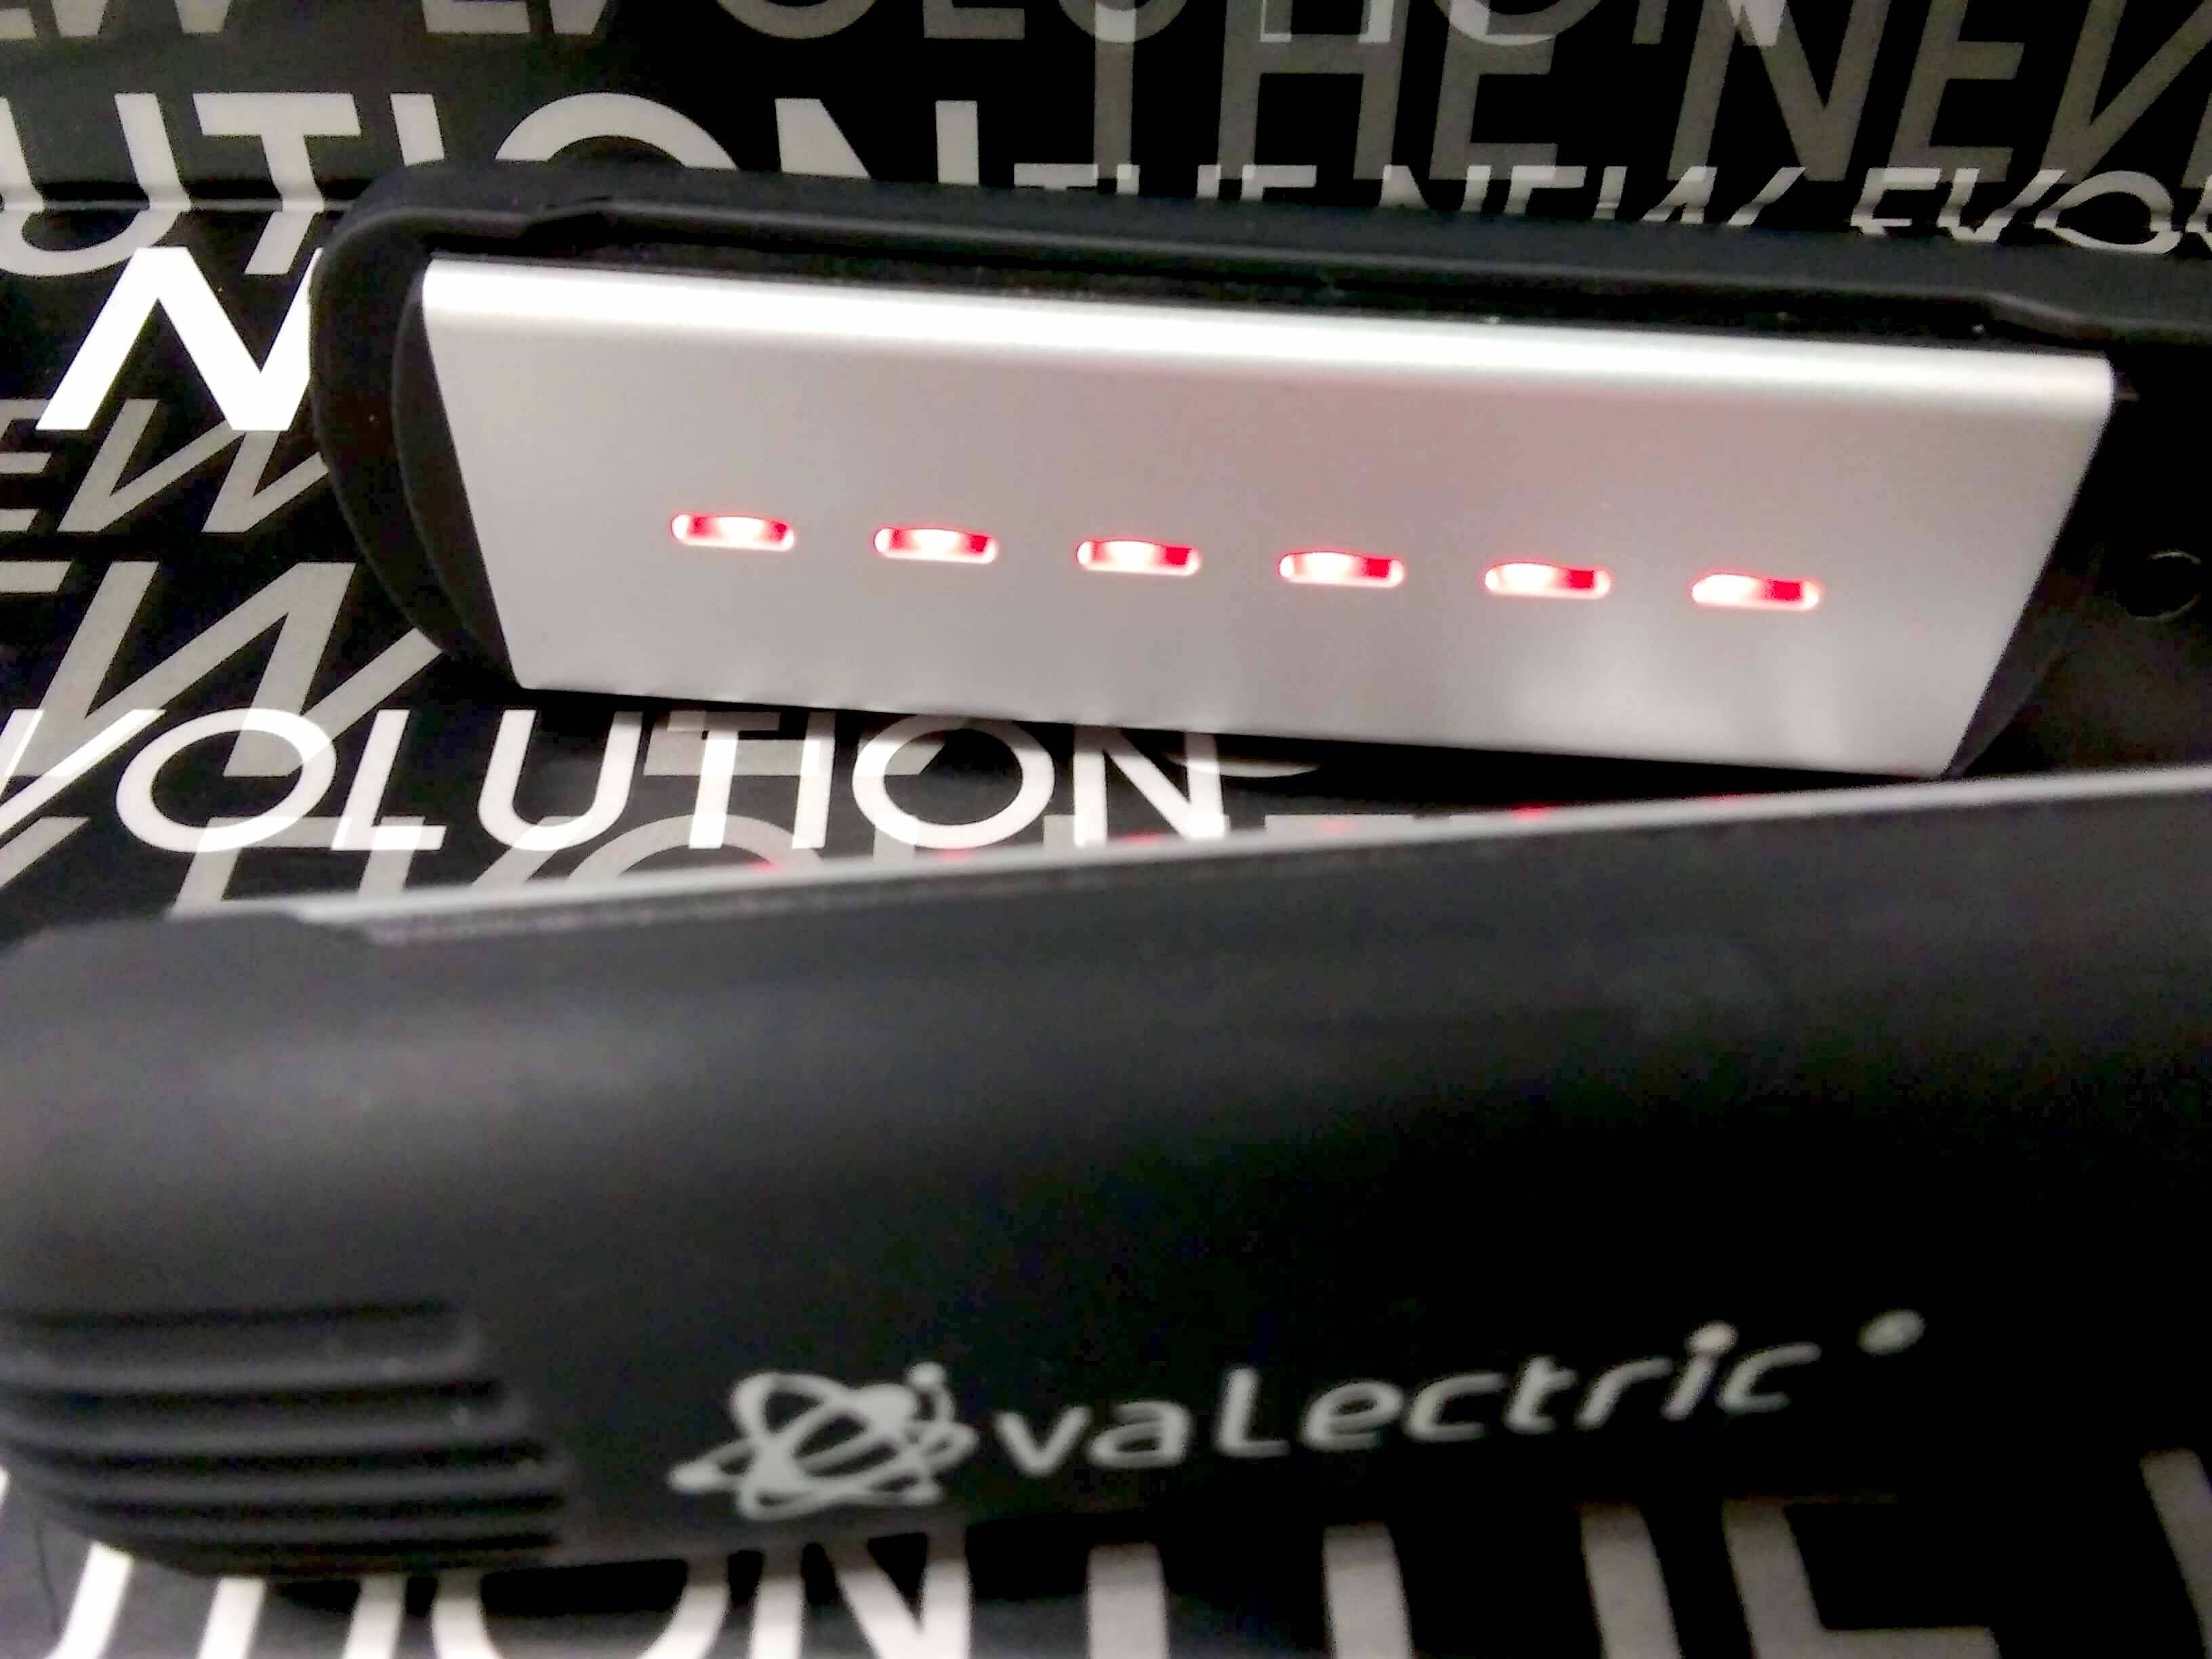 Evalectric Iconic LED Straightener review